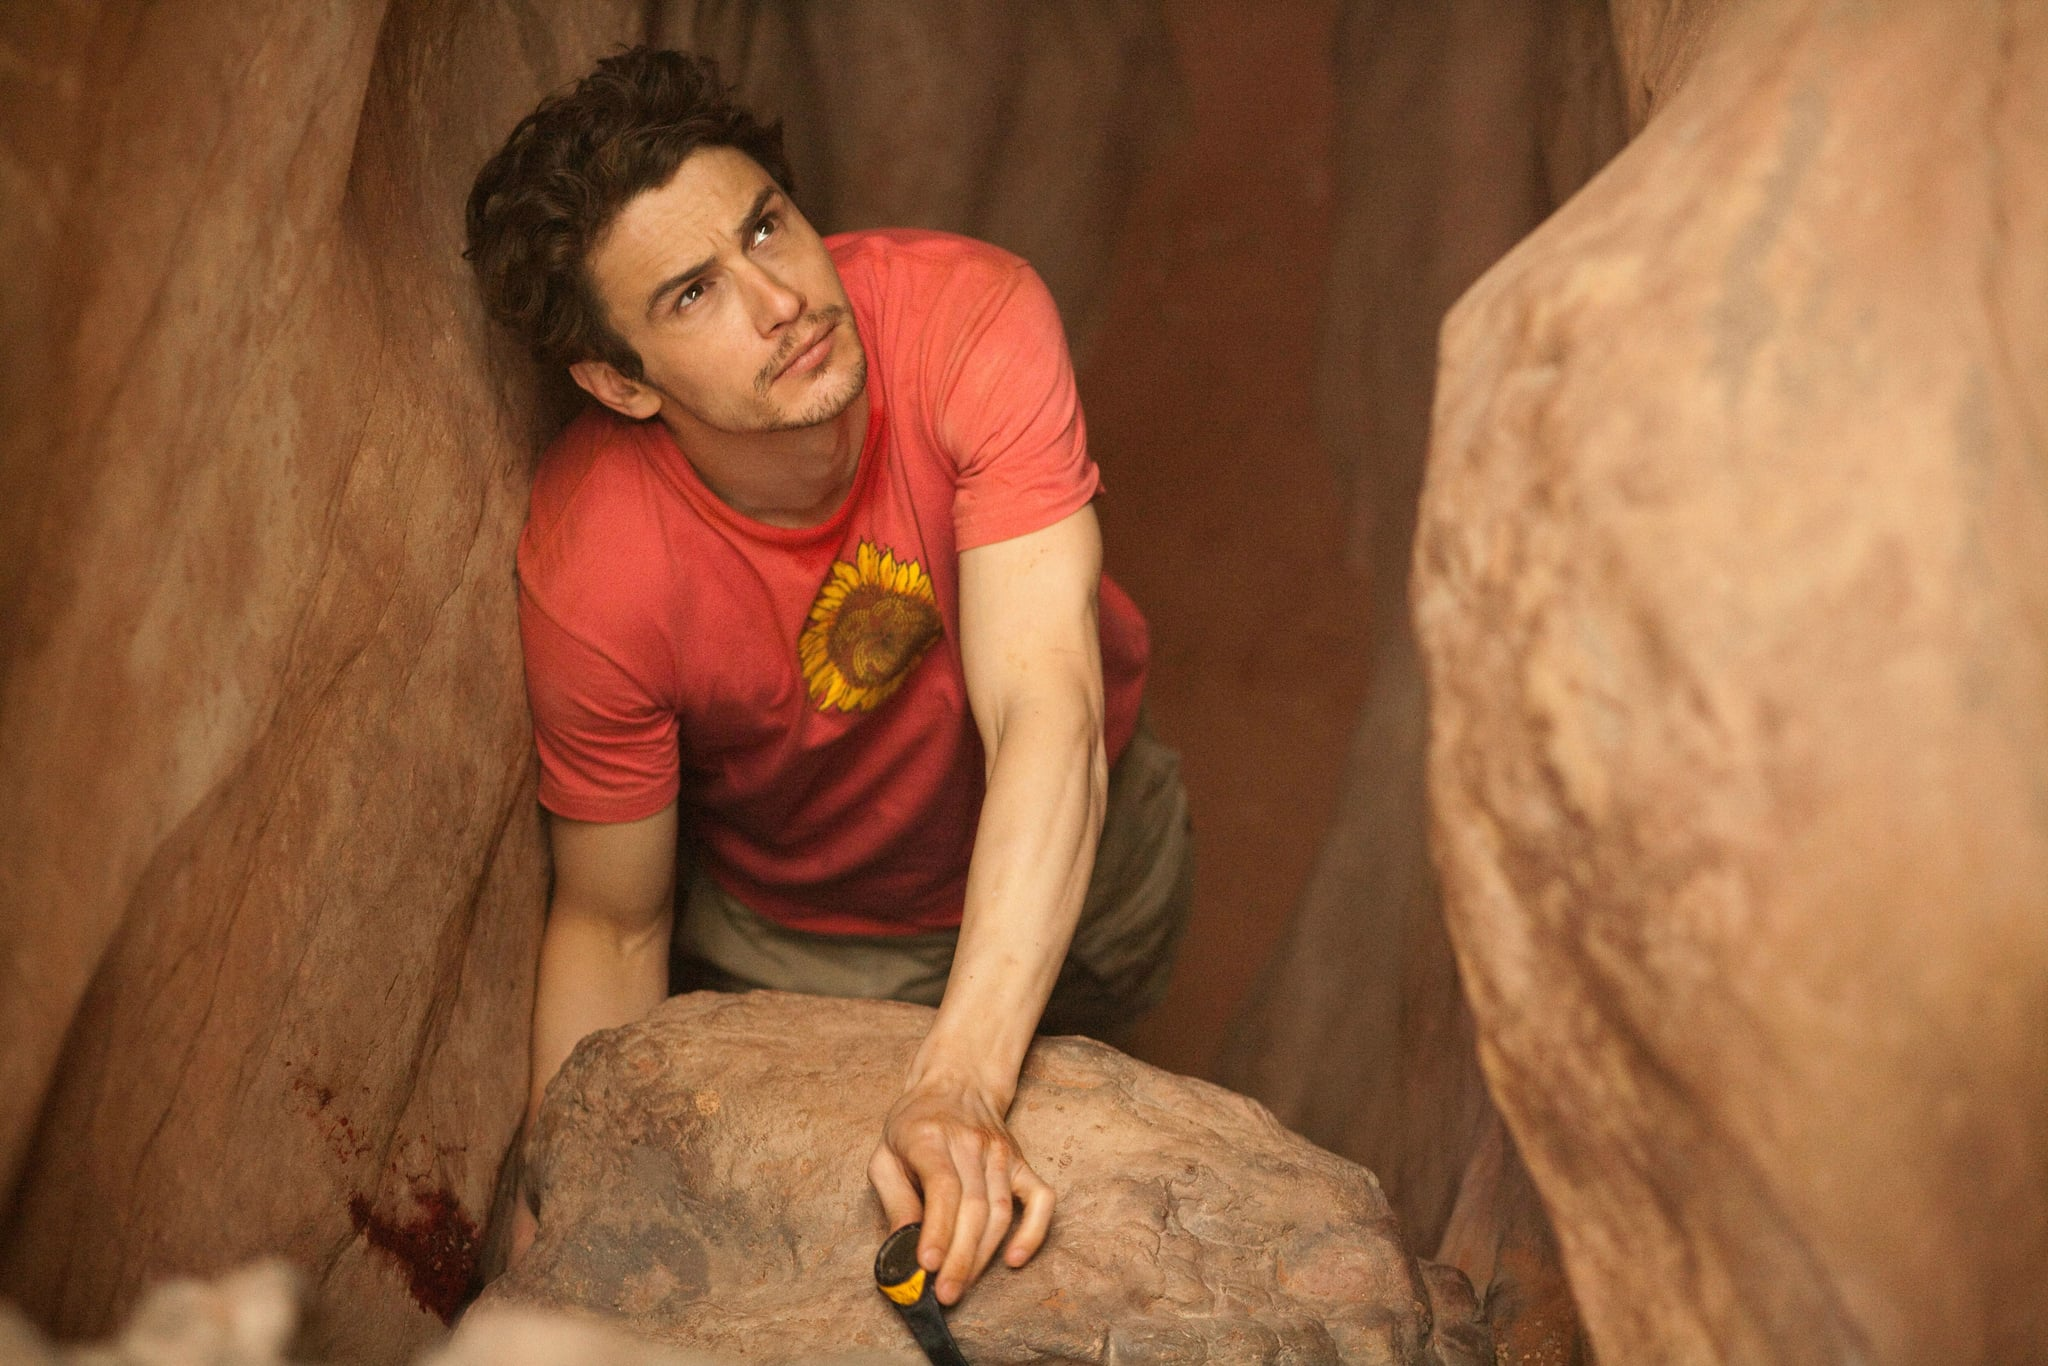 127 Hours | A Decade Later, These 20 Films From 2010 Still Rank Among Our Favorites | POPSUGAR Entertainment Photo 20